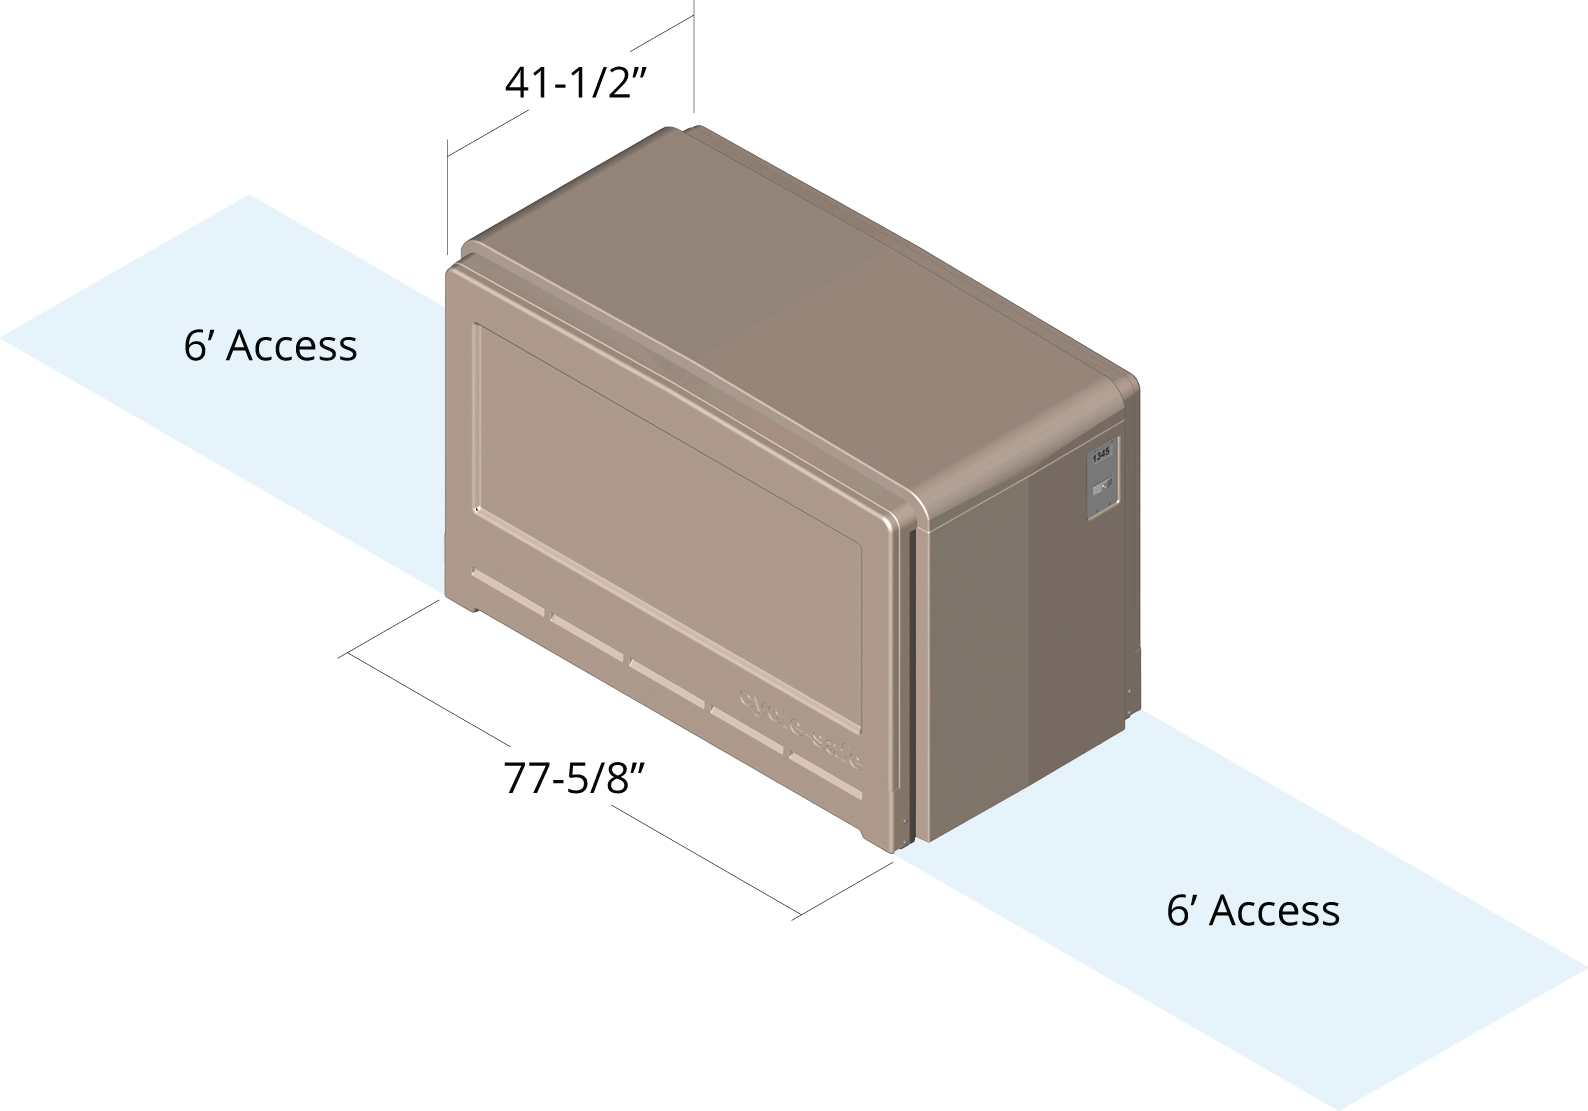 Bike Locker Dimensions